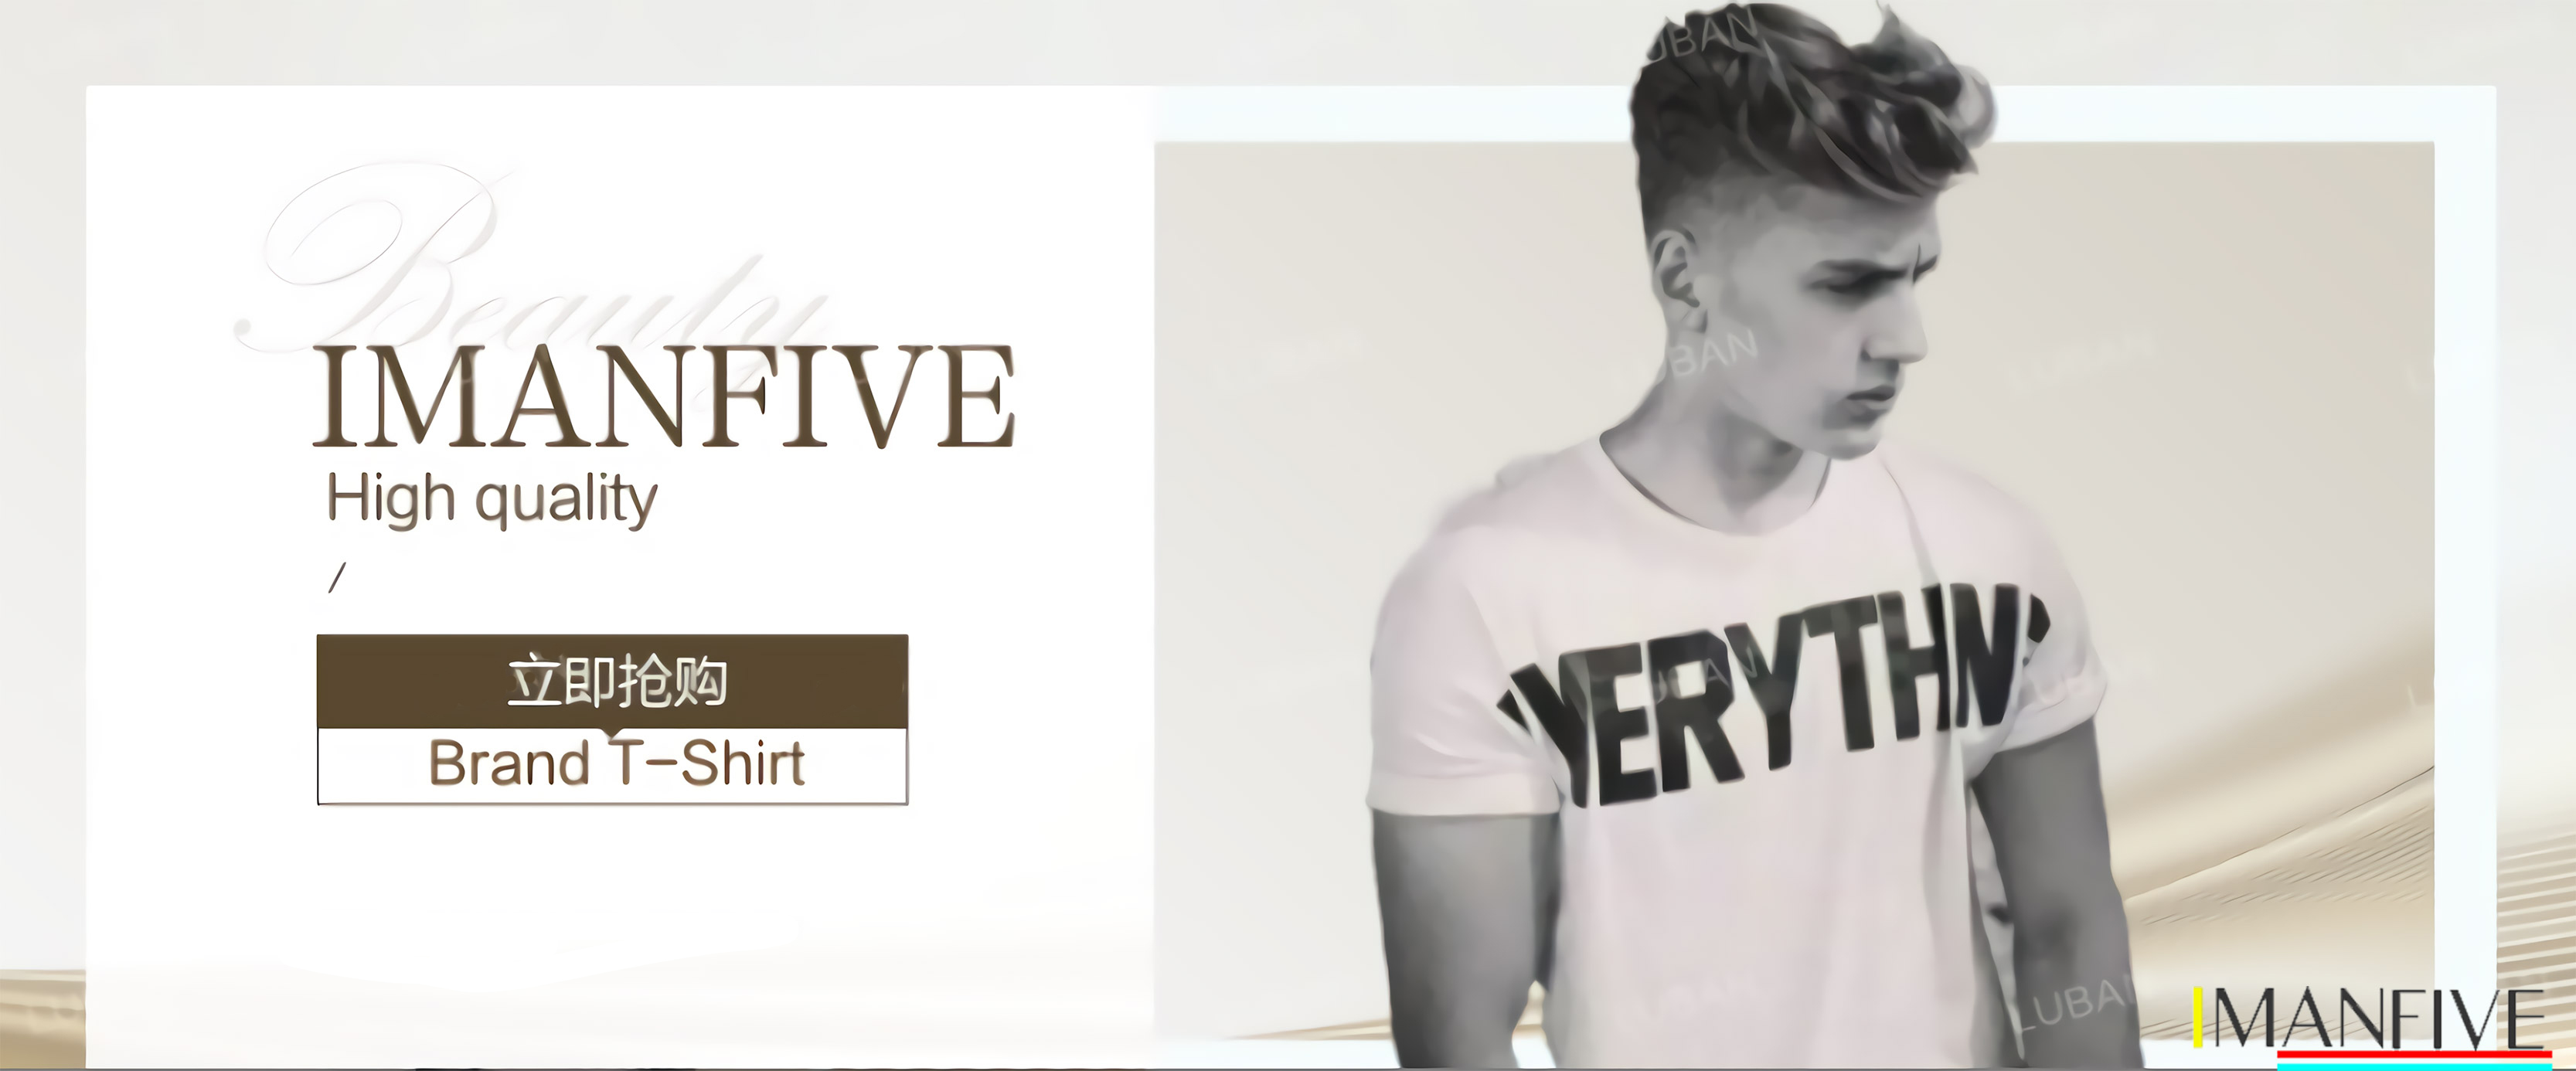 Brand Story - Welcome to IMANFIVE Store